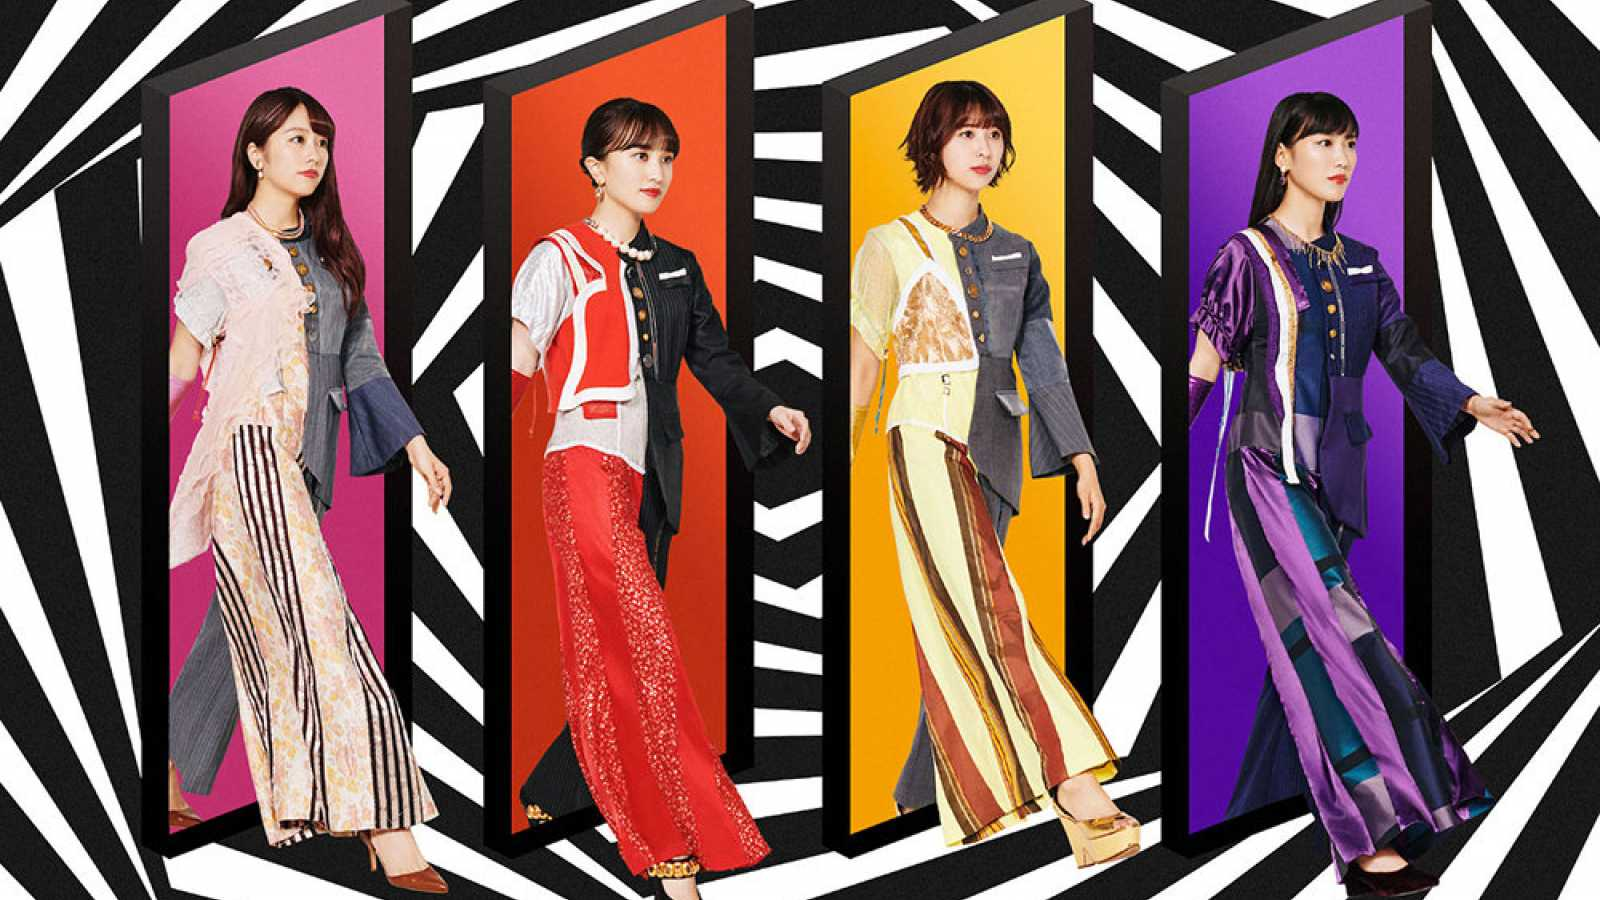 Momoiro Clover Z - stay gold © STARDUST PROMOTION INC. All rights reserved.